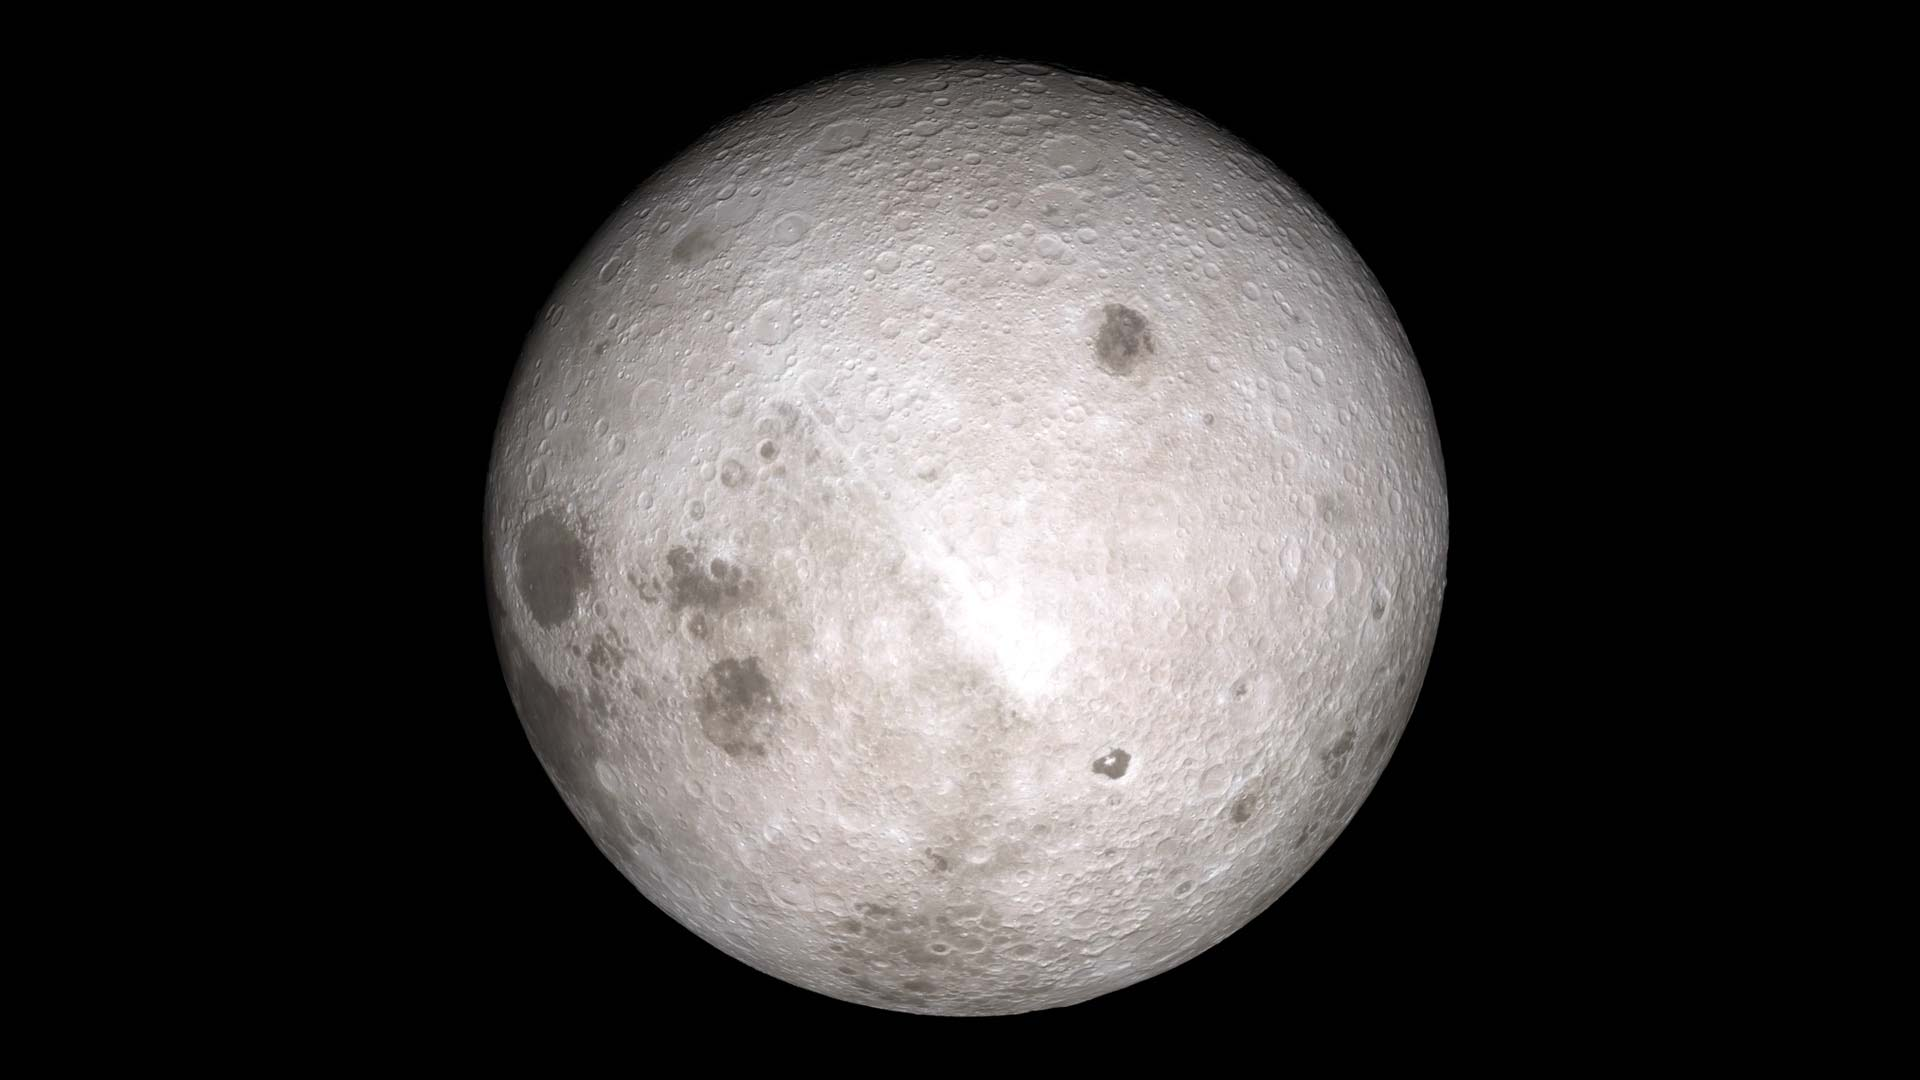 The far side of the moon as imaged by NASA's Lunar Reconnaissance Orbiter.